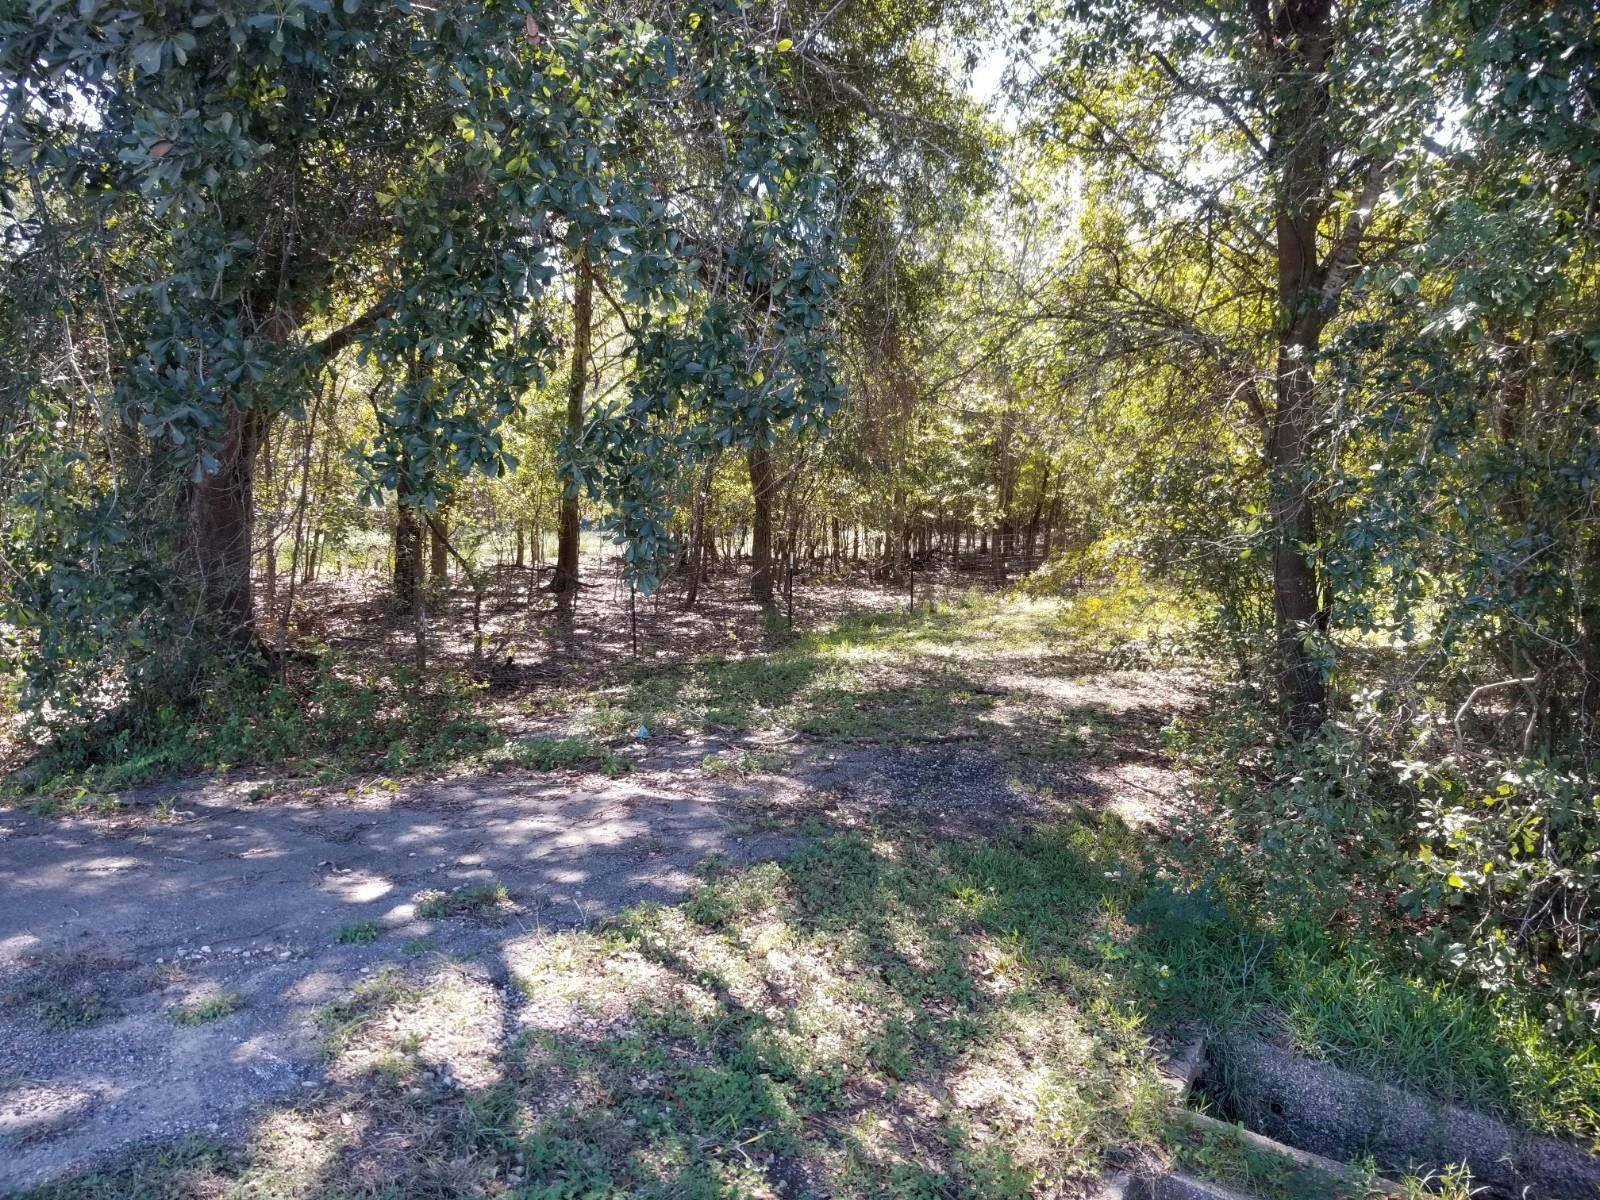 000 FM 1875 Property Photo - Beasley, TX real estate listing